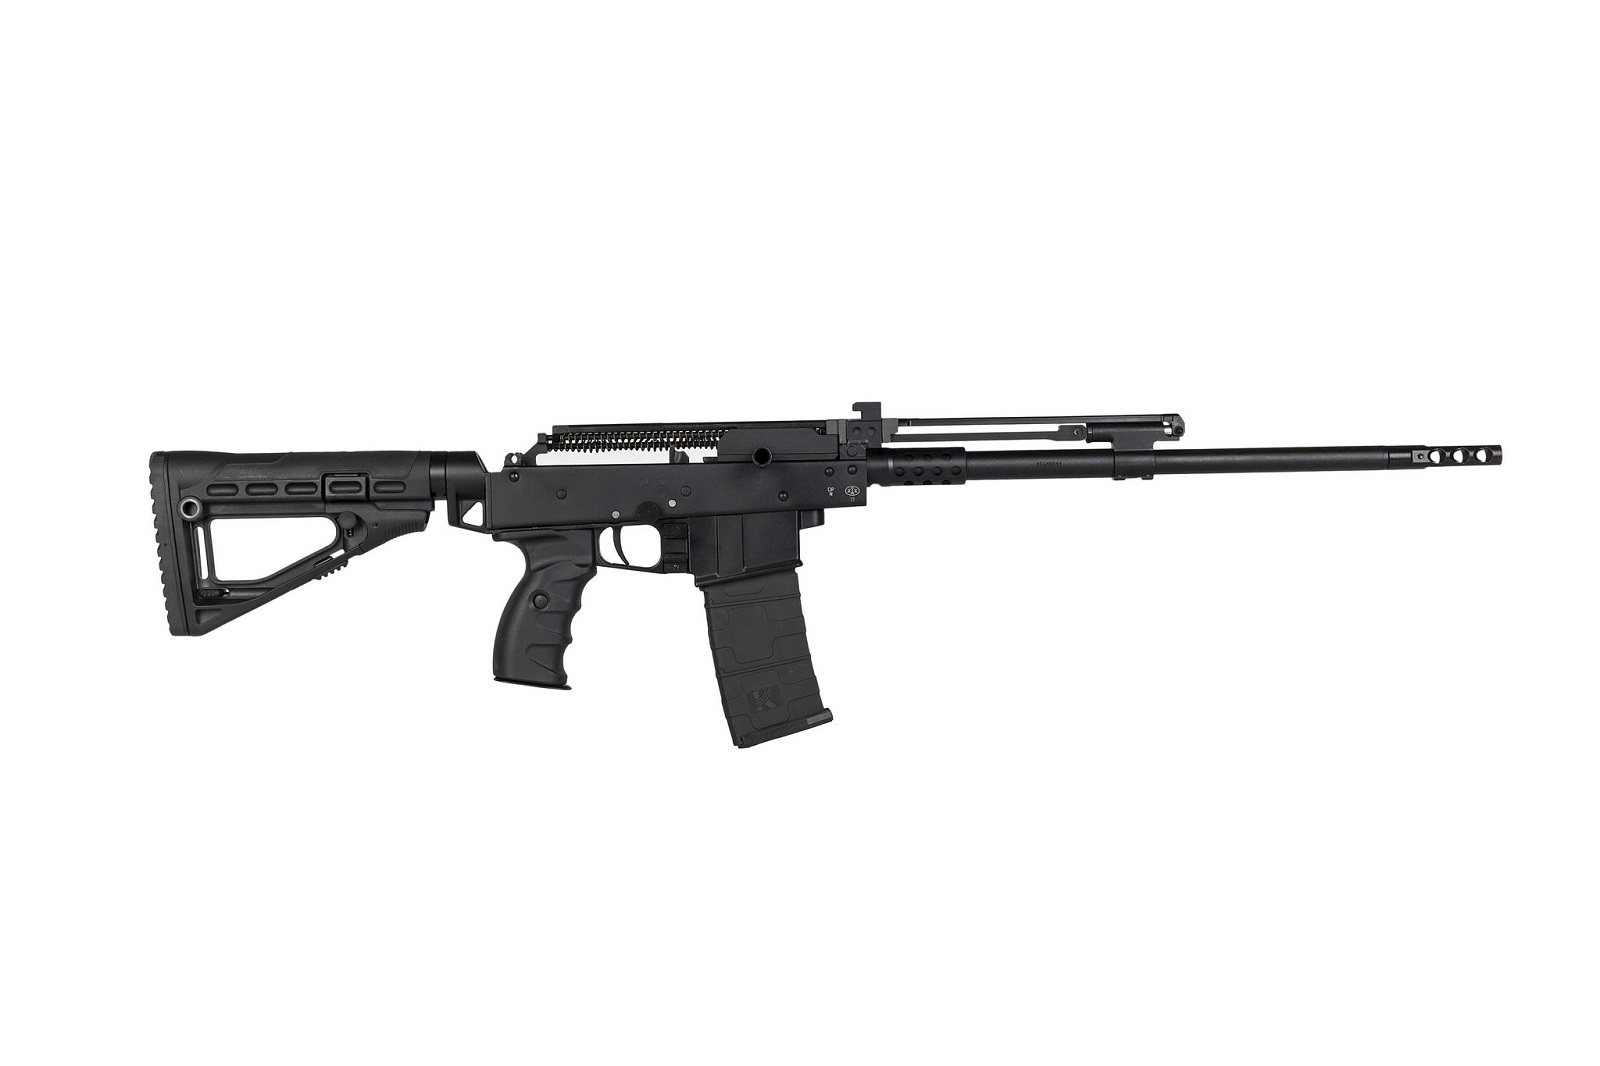 Kalashnikov SR1 rifle, right side view